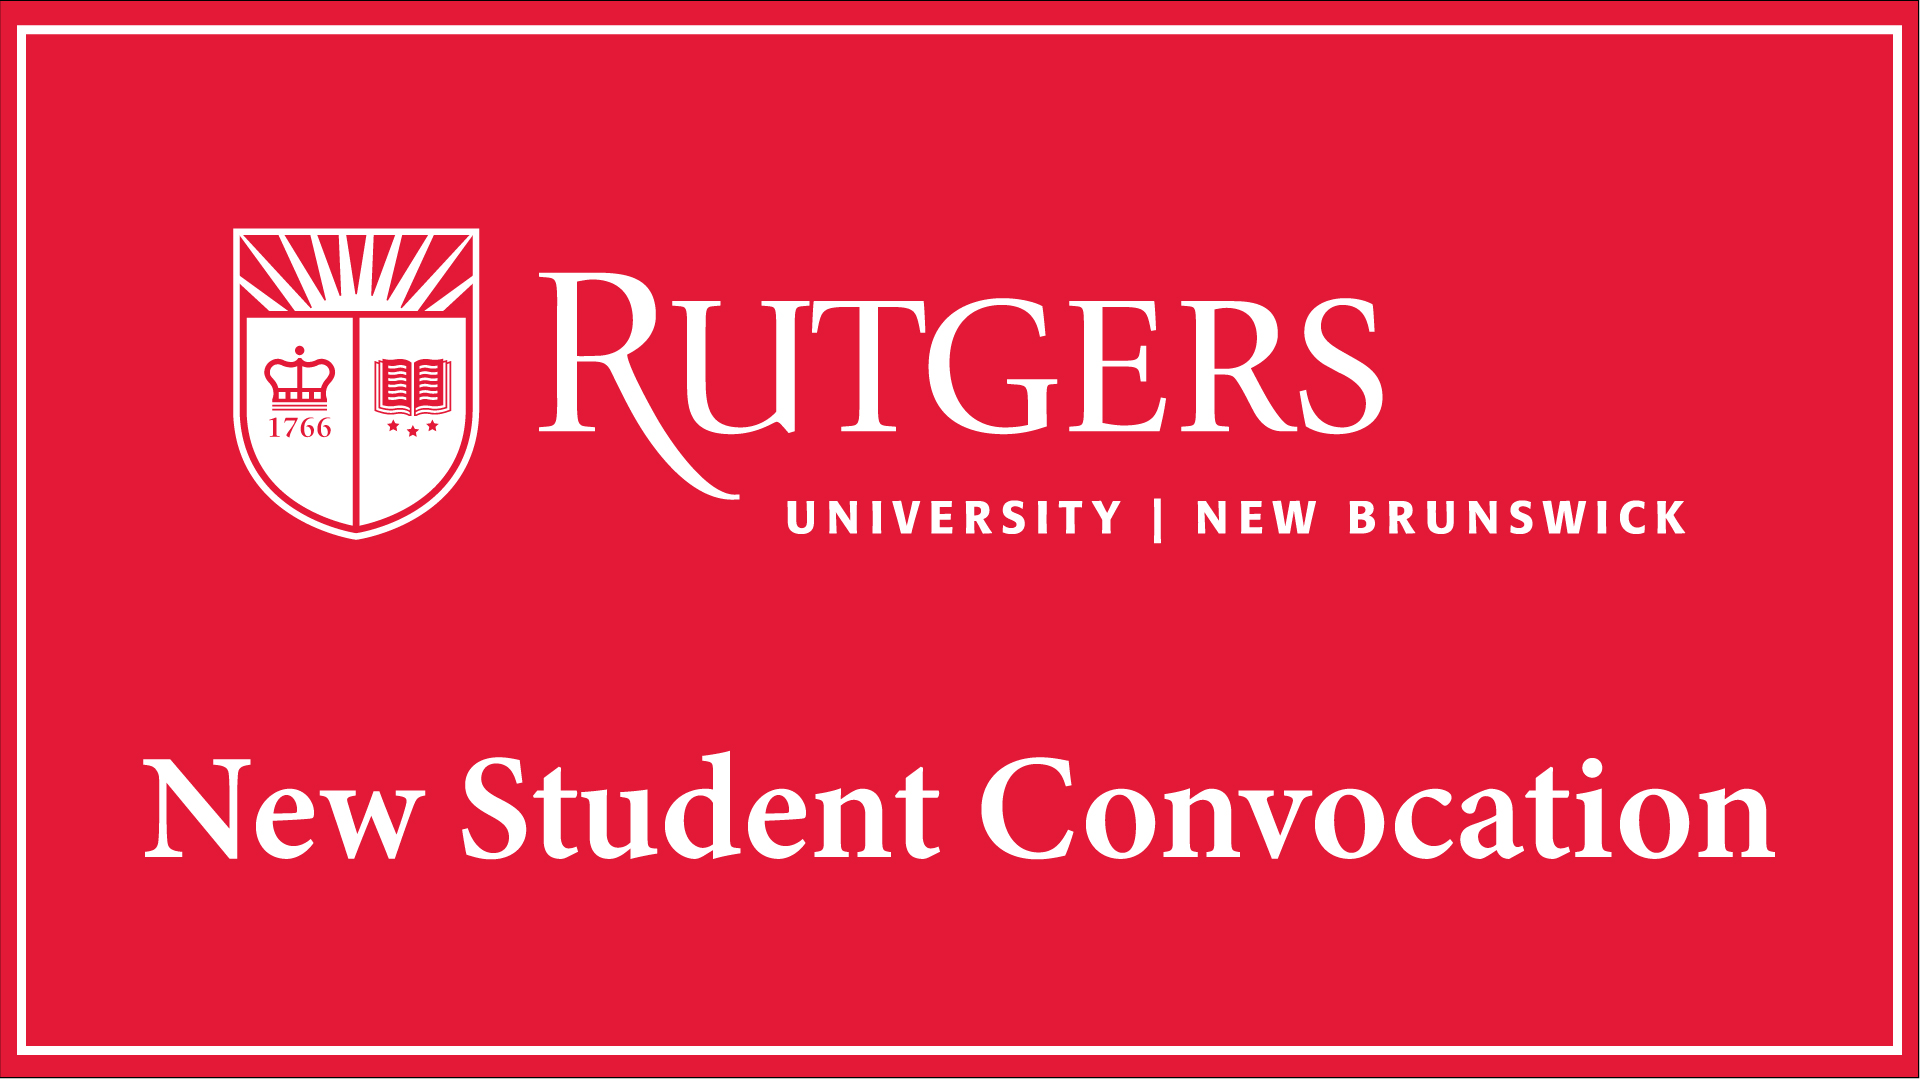 Rutgers-New Brunswick logo with shield, New Student Convocation